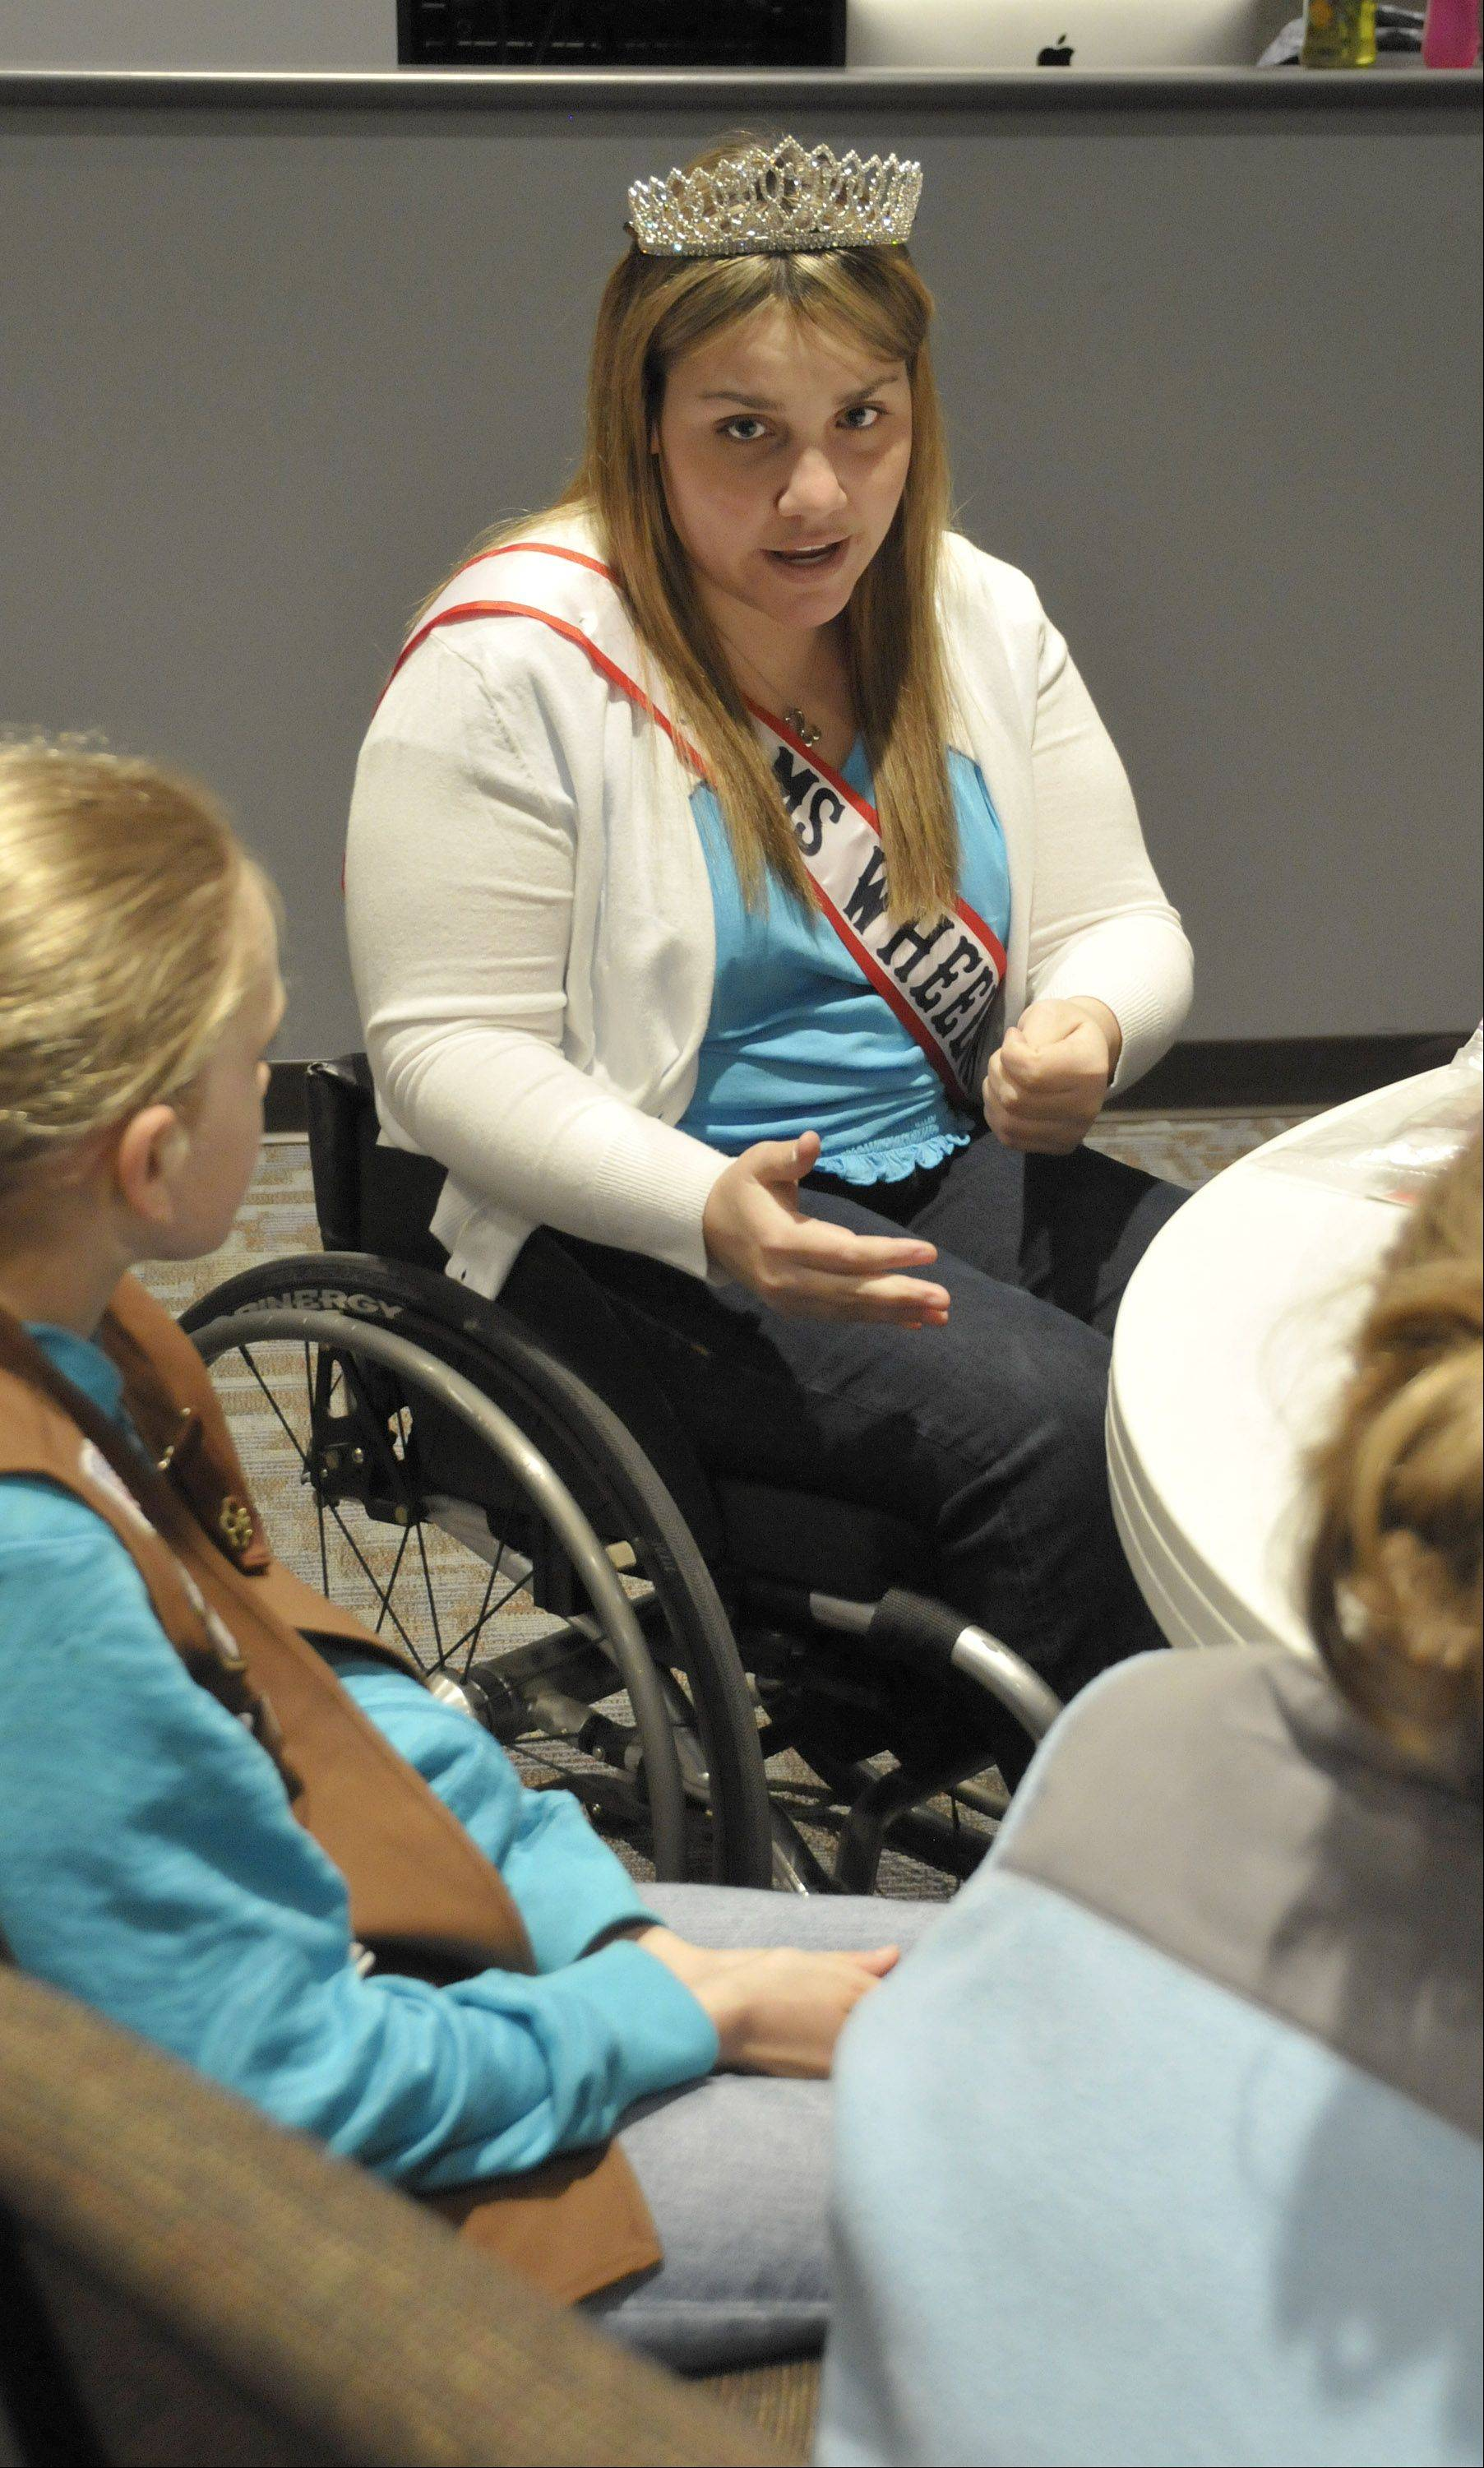 Danielle Austin of Carol Stream speaks Friday to Brownie Troop 50877 in Lisle about how she has dealt with her cerebral palsy. She was crowned Ms. Wheelchair Illinois America 2013 in March. She will represent Illinois at the National Ms. Wheelchair America Pageant in Houston in July. She'll be holding a fundraiser on May 19 to raise money for the trip. Her platform is disability awareness.